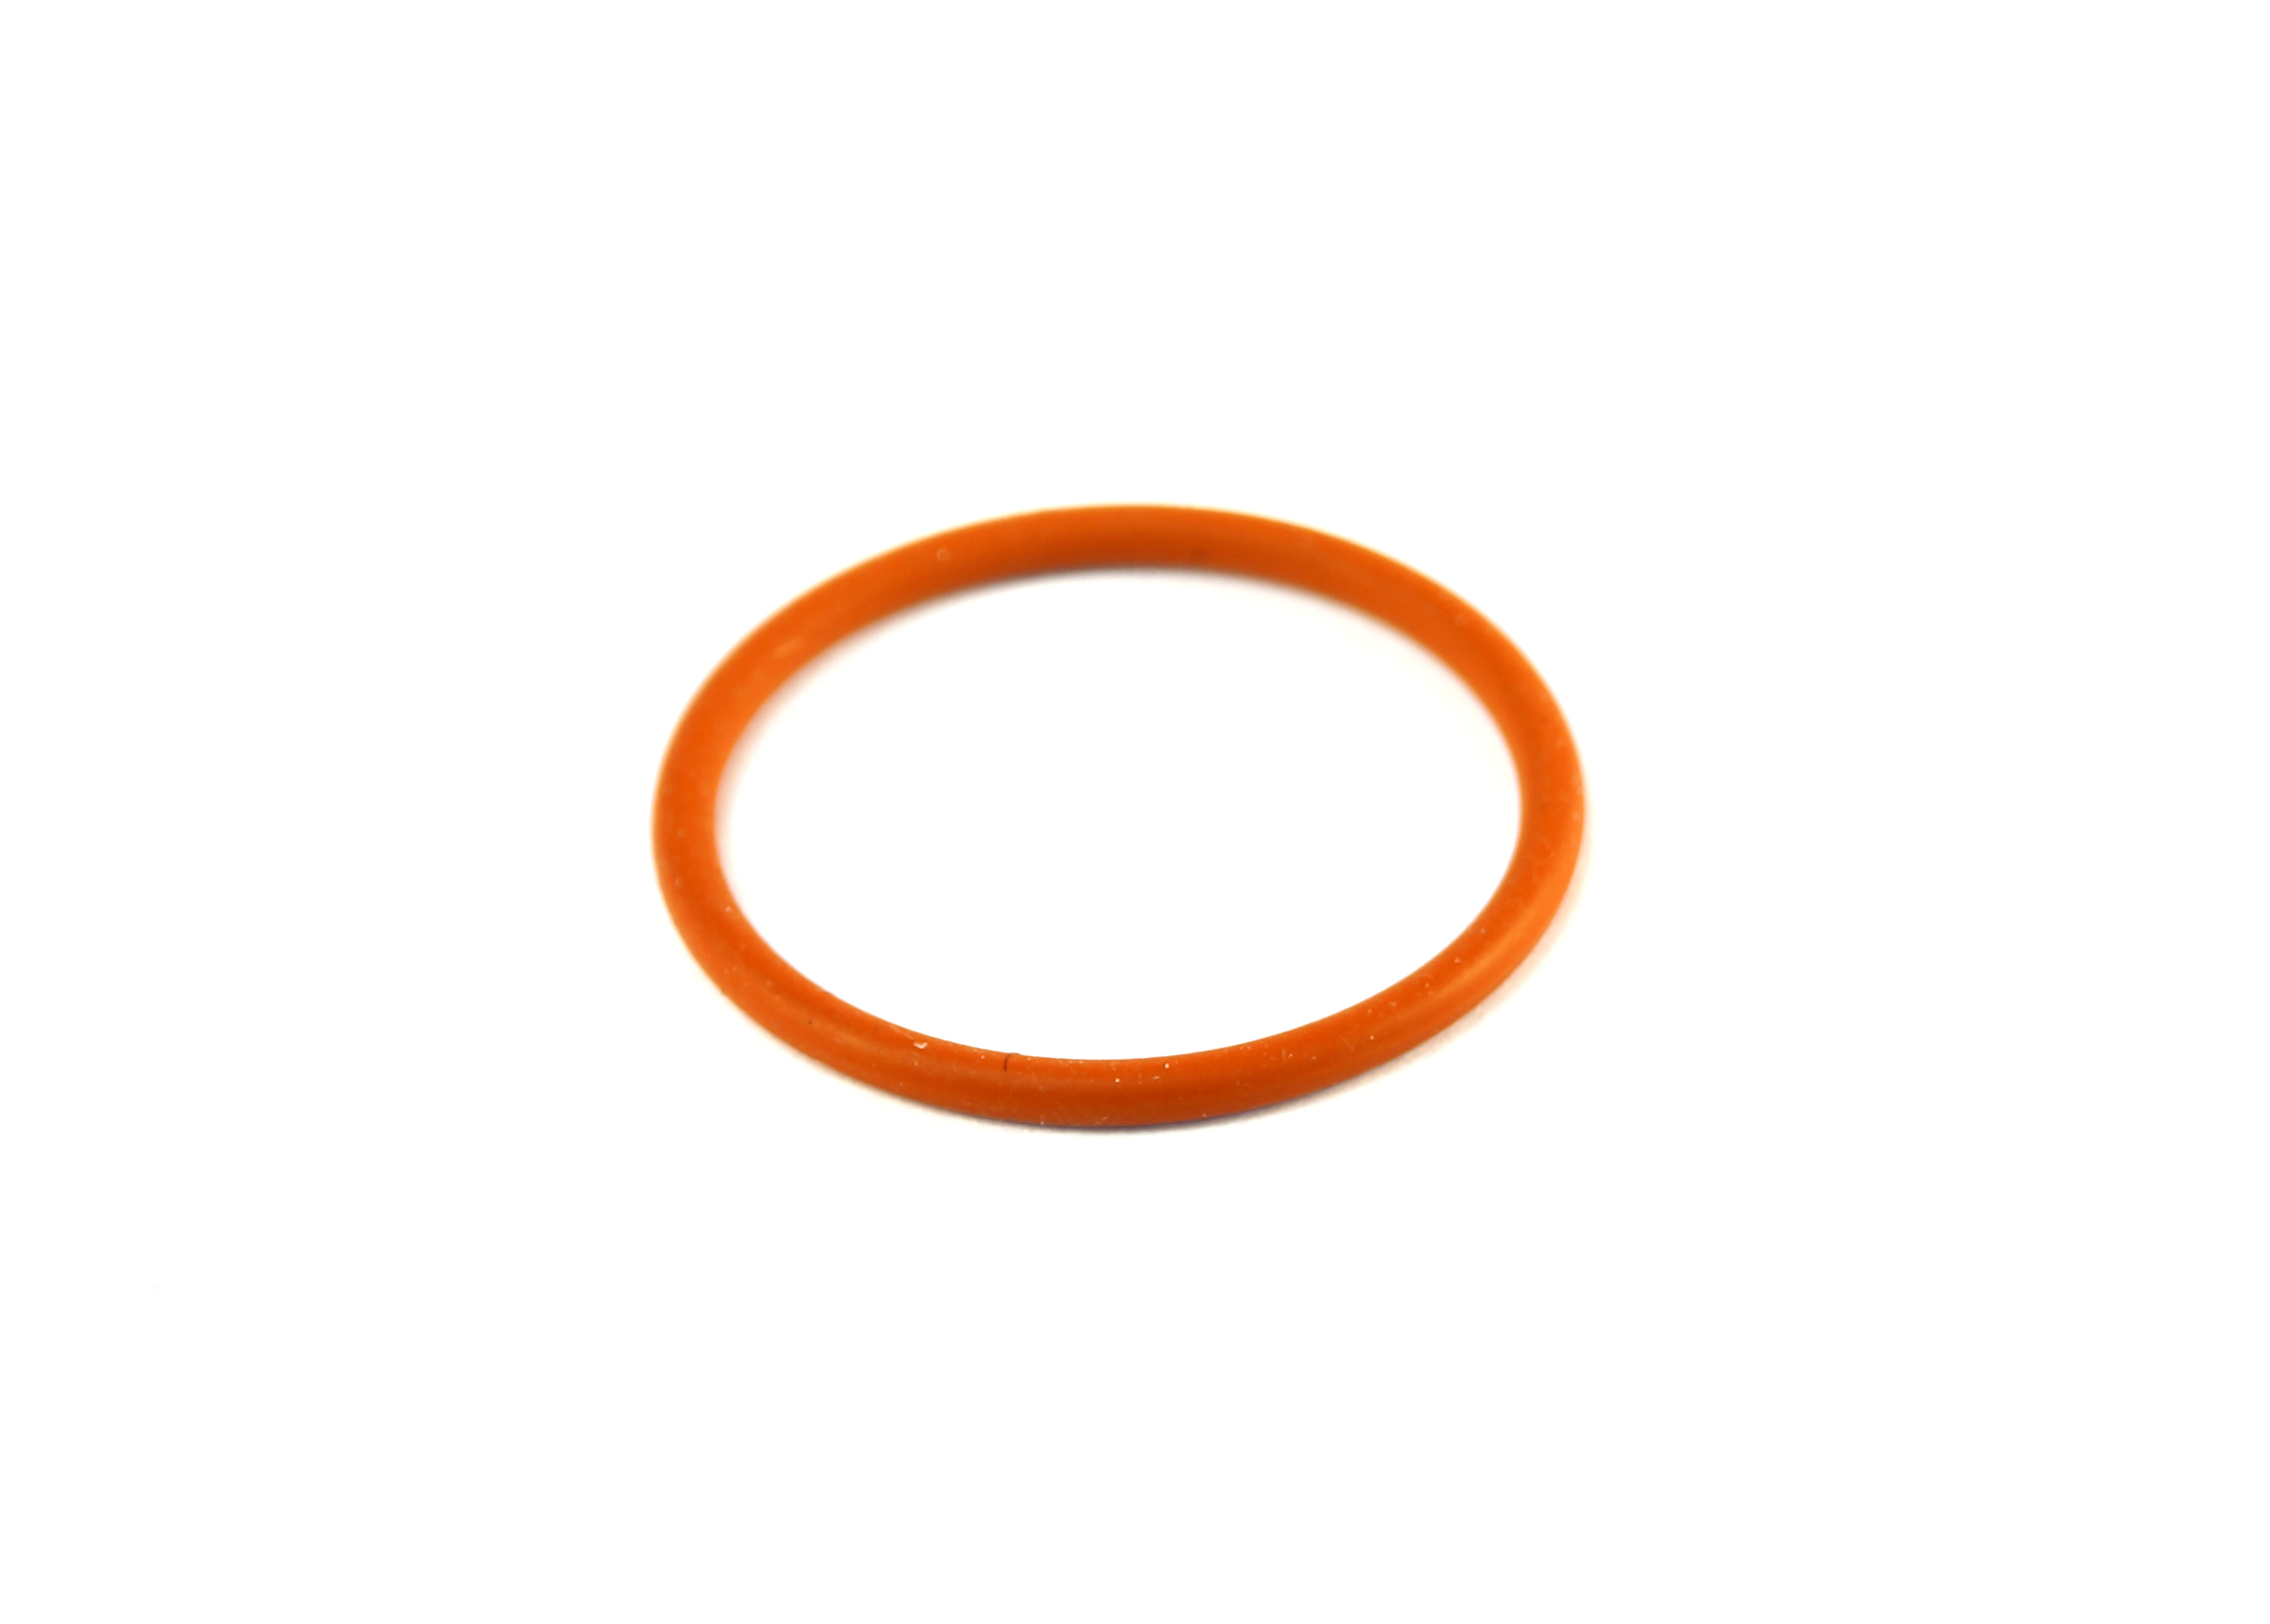 O Ring Silicone Rubber, 25 x 2mm, 03654629